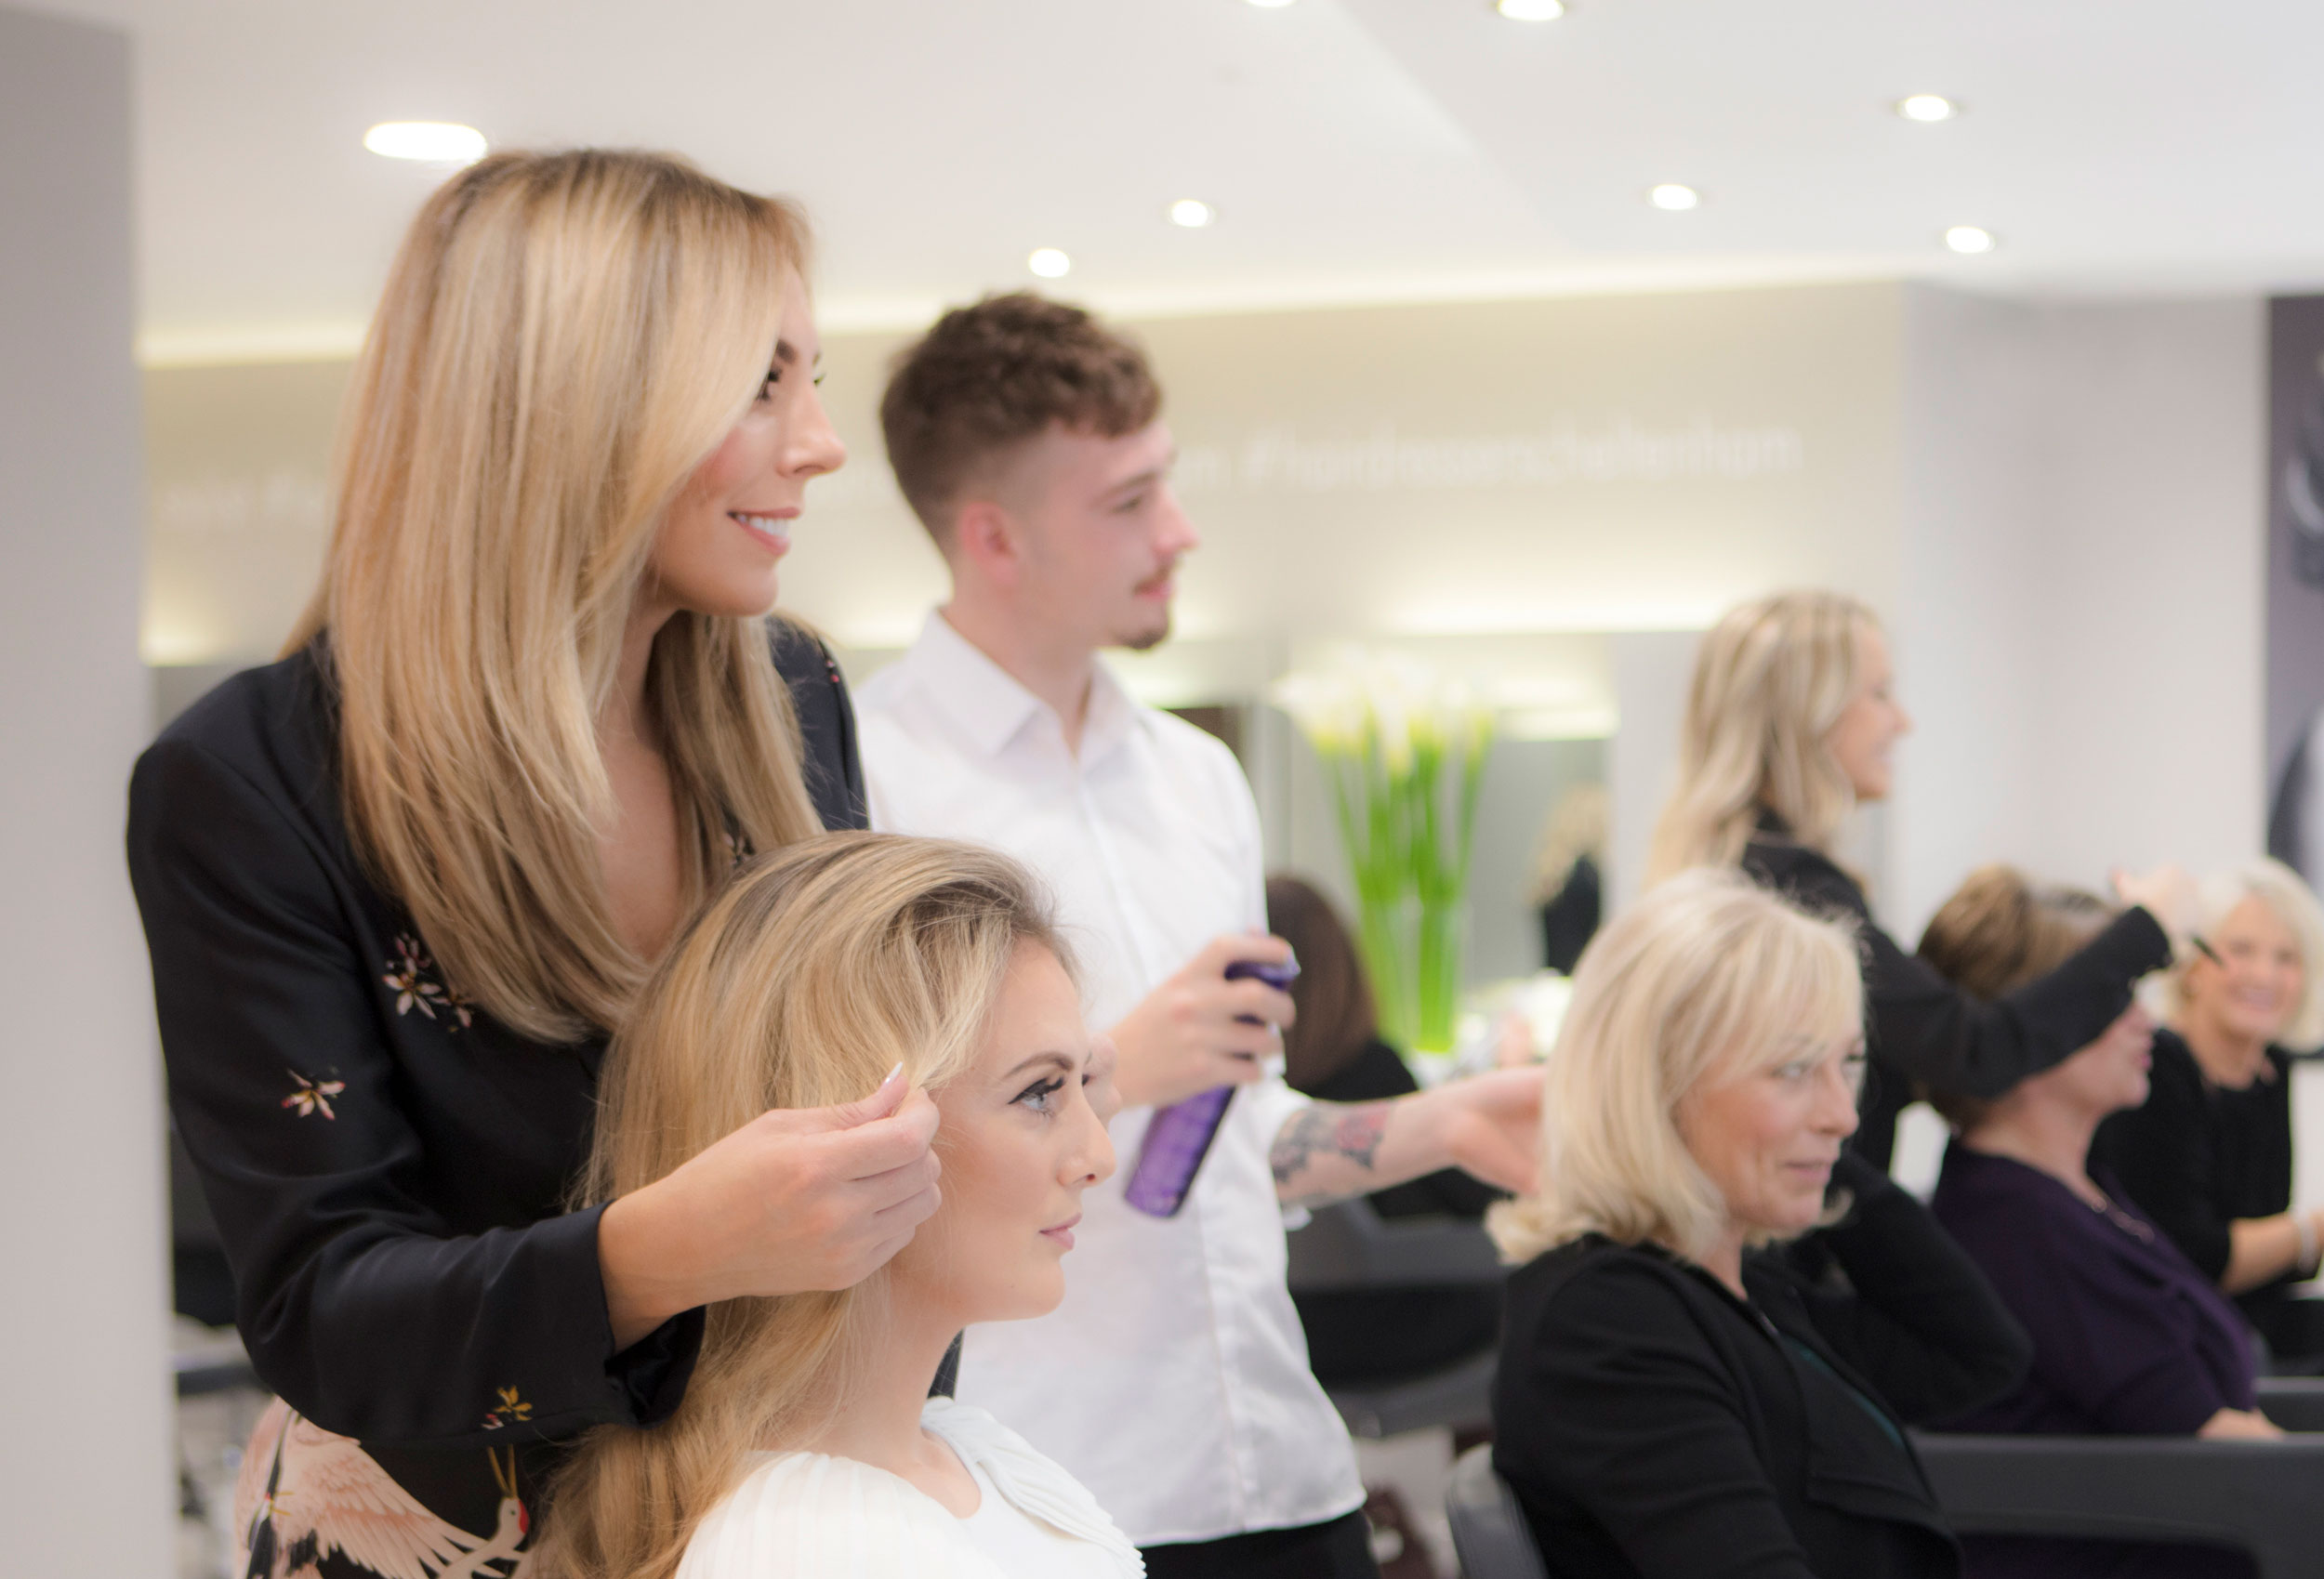 hairdressers - photo #20